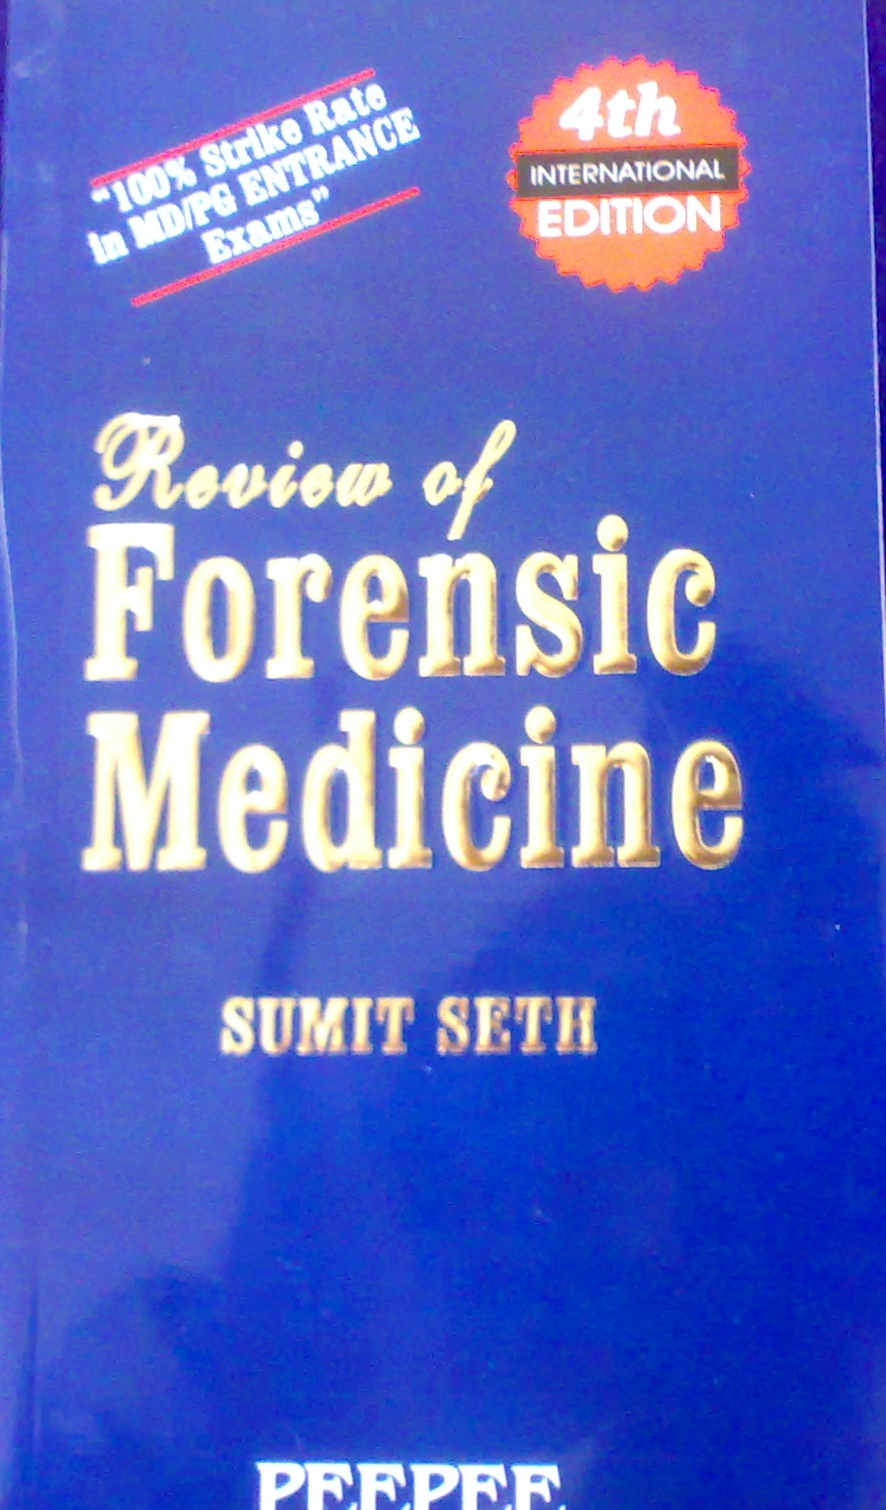 Review Of Forensic Medicine Sumit Seth Pdf